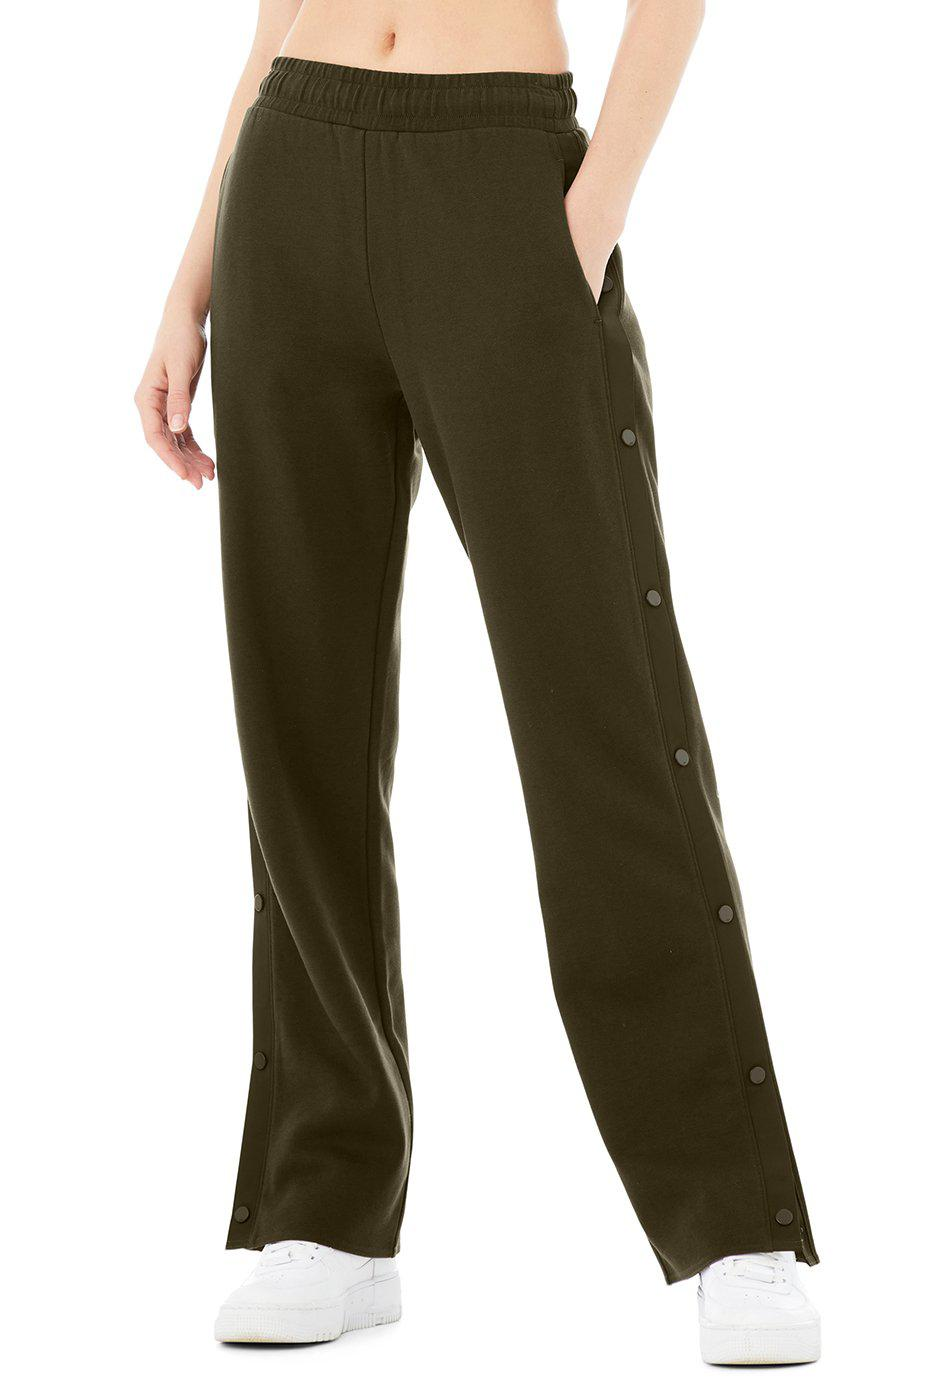 COURTSIDE TEARAWAY SNAP PANT